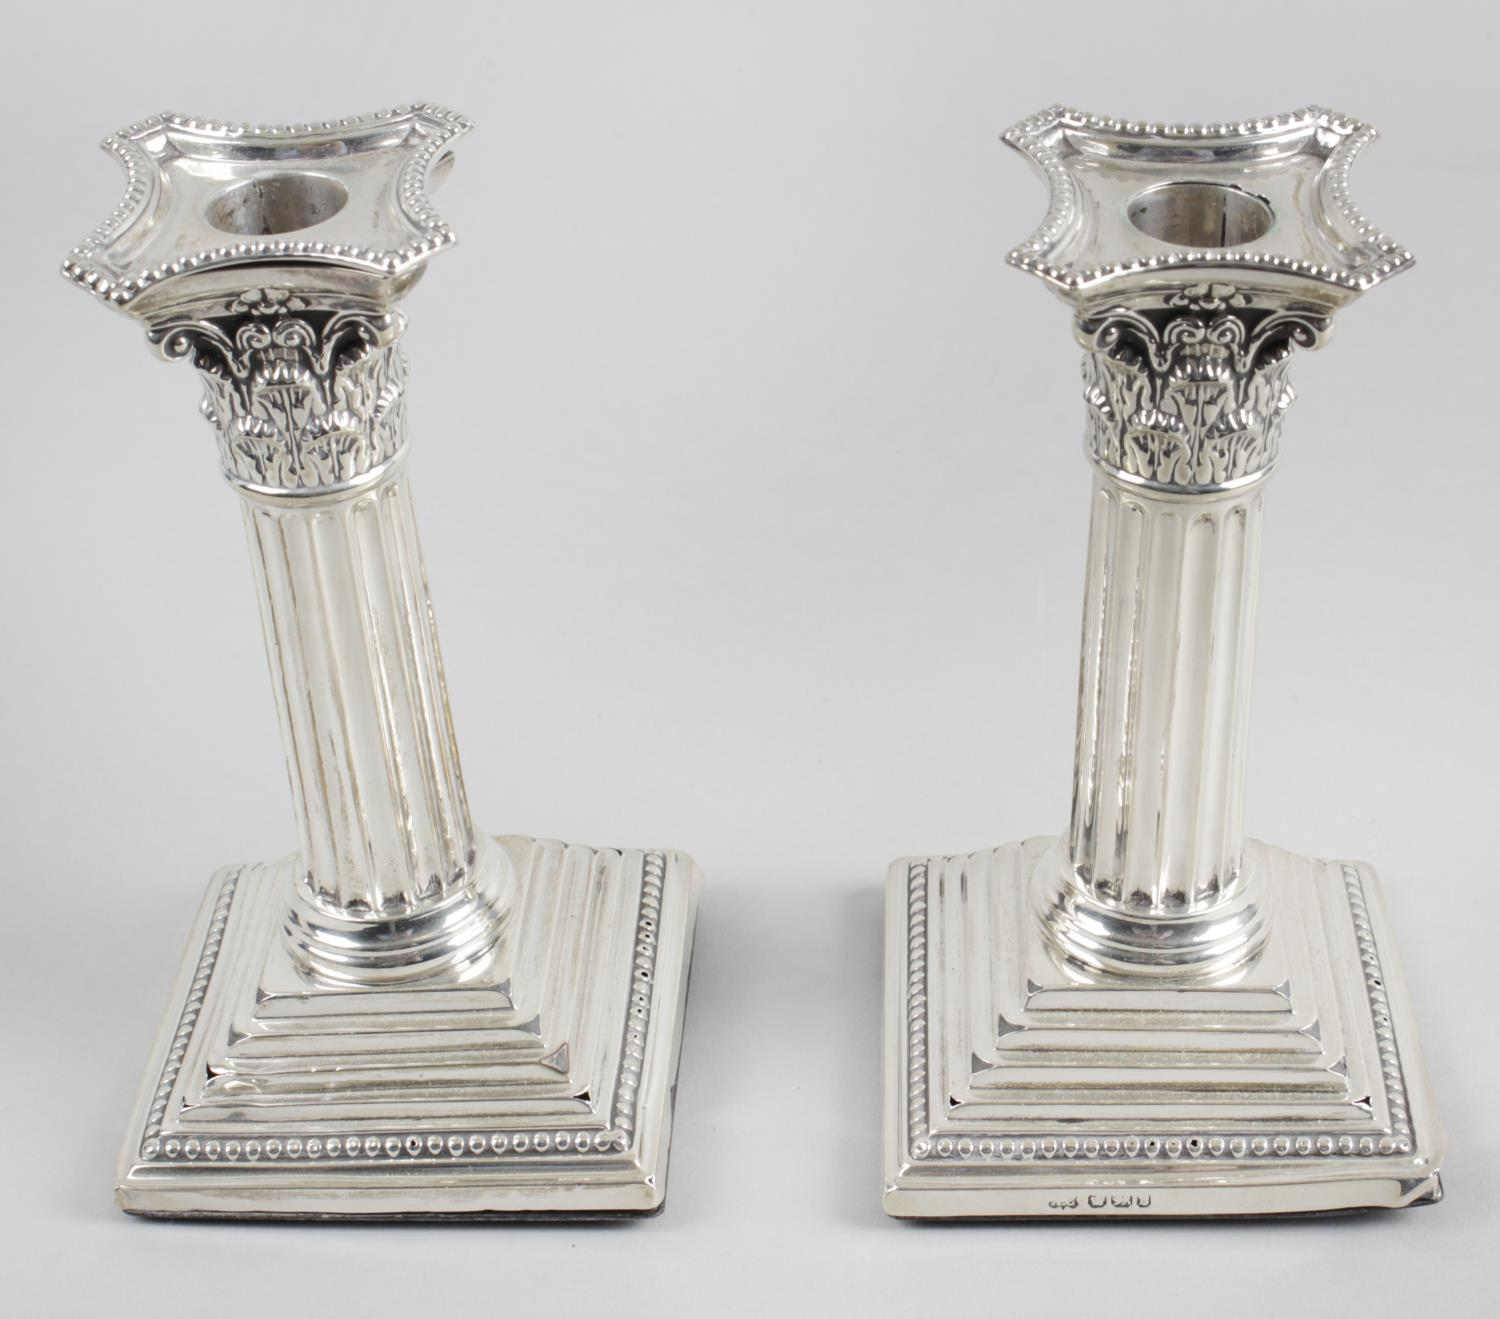 Lot 17 - A pair of late Victorian silver mounted candlesticks,